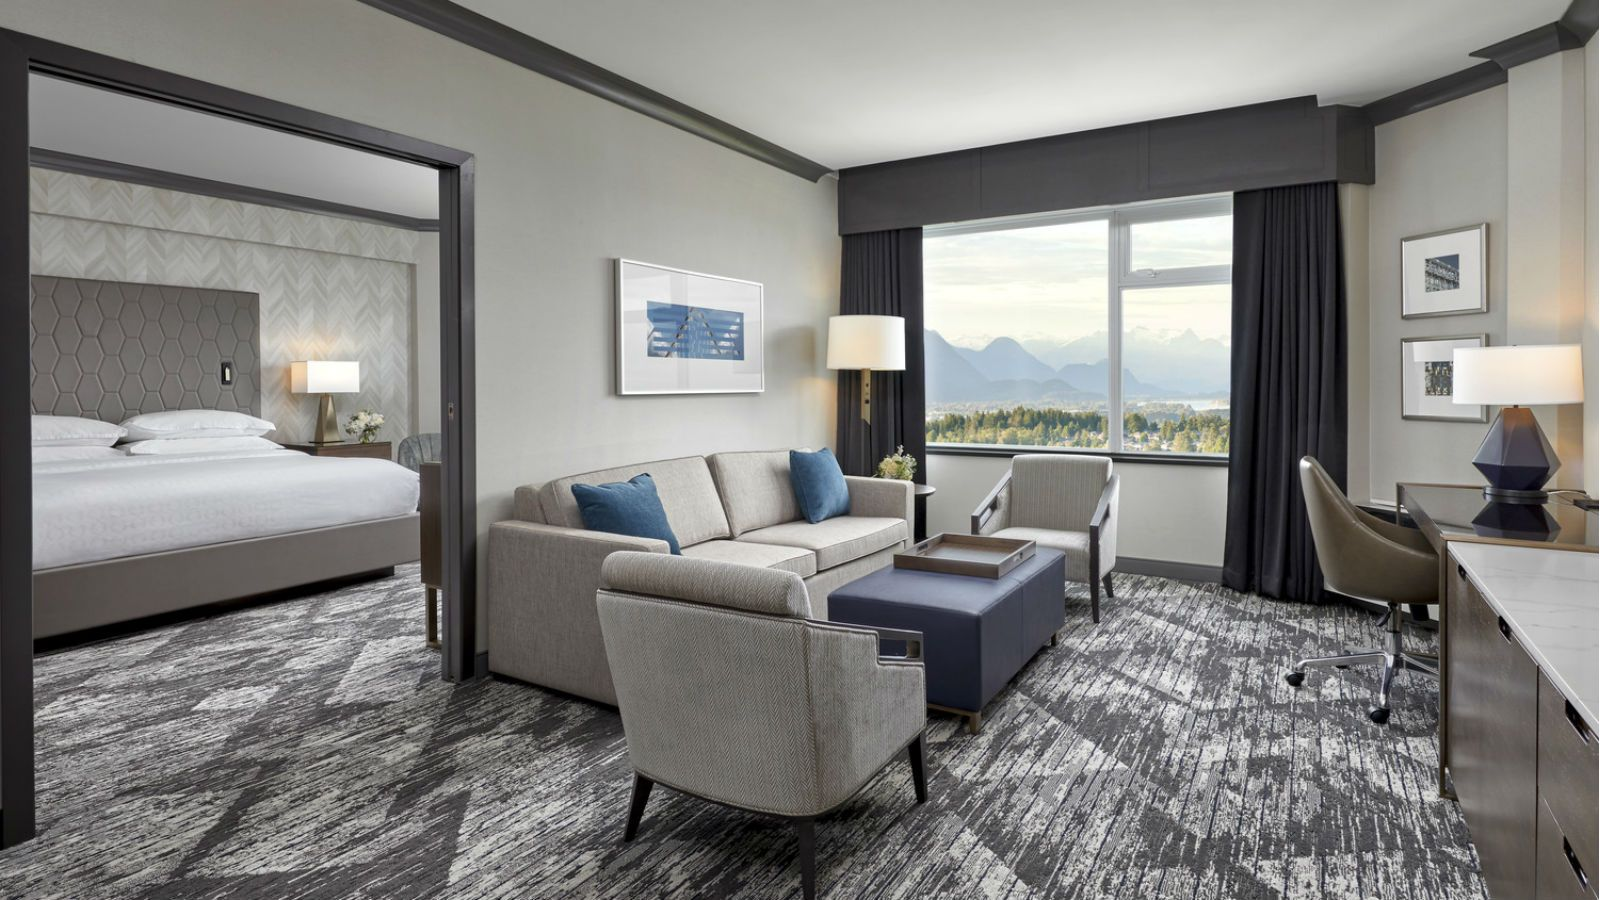 A Penthouse Suite overlooking Vancouver's mountains at the Sheraton Vancouver Guildford. 8